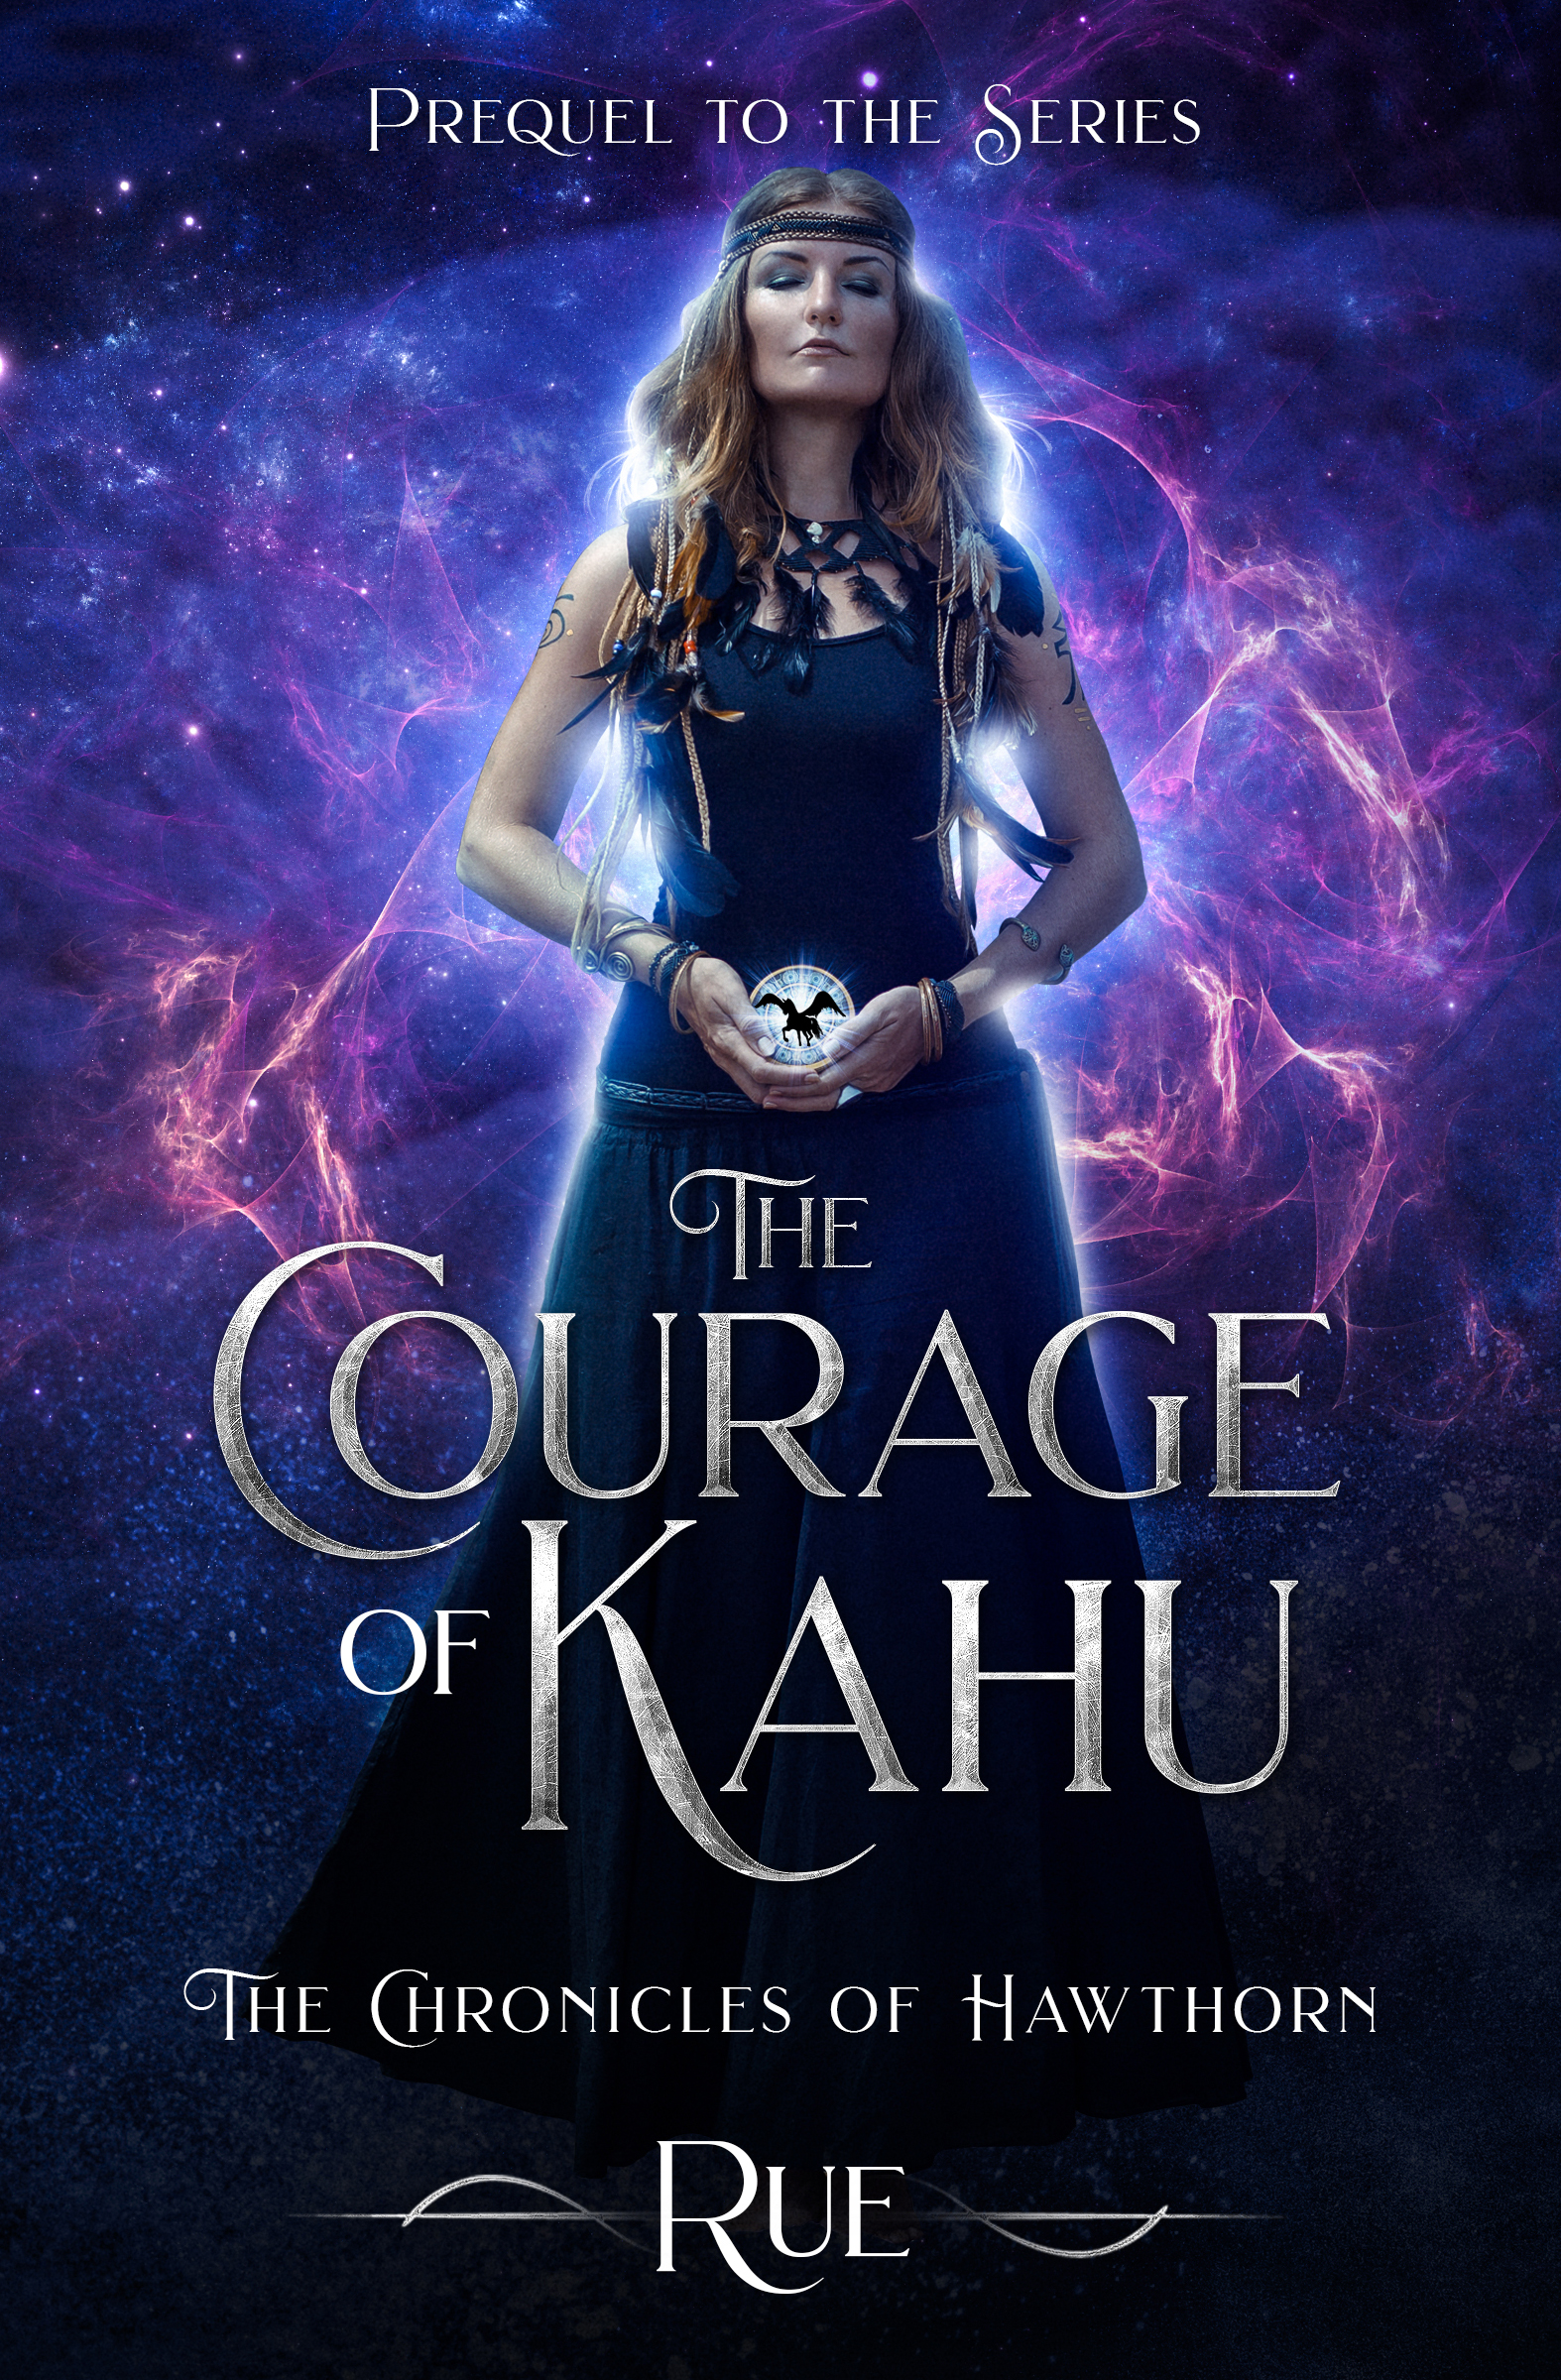 //ruescorner.com/wp-content/uploads/2018/01/The-Courage-of-Kahu-ebook_2017.jpg